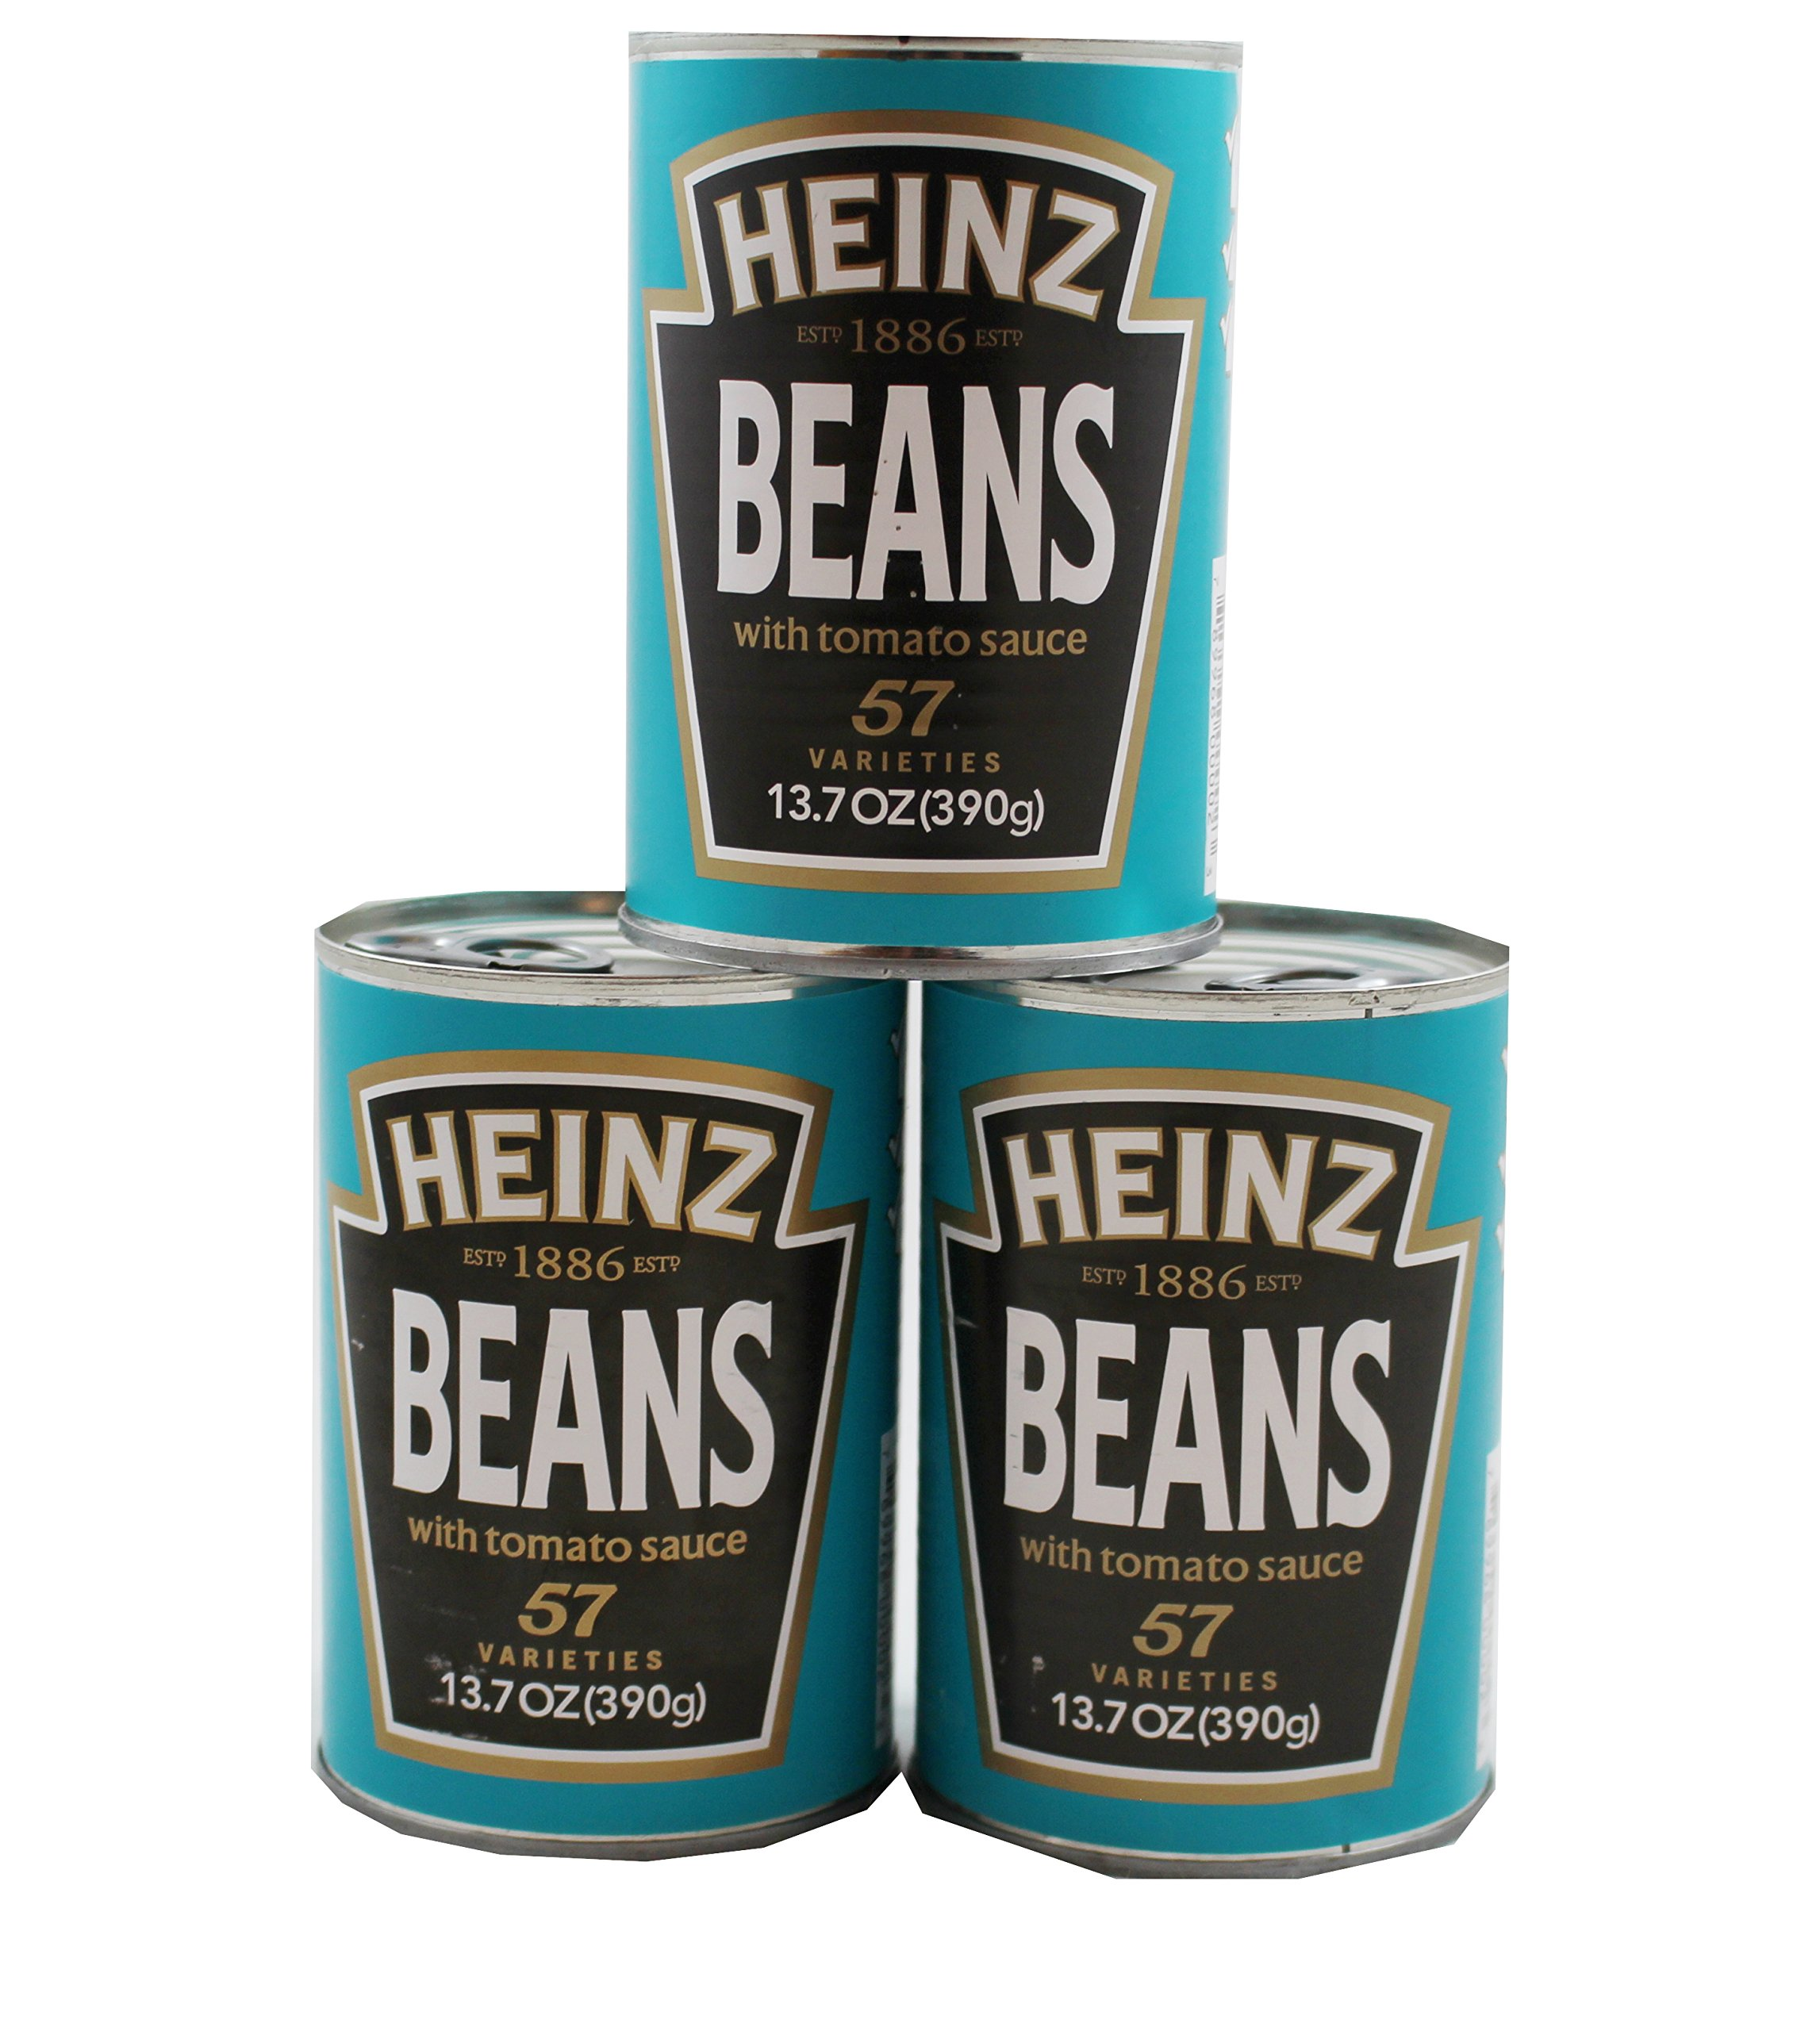 Heinz Beans with Tomato Sauce, 13.7 oz Can (Pack of 3)